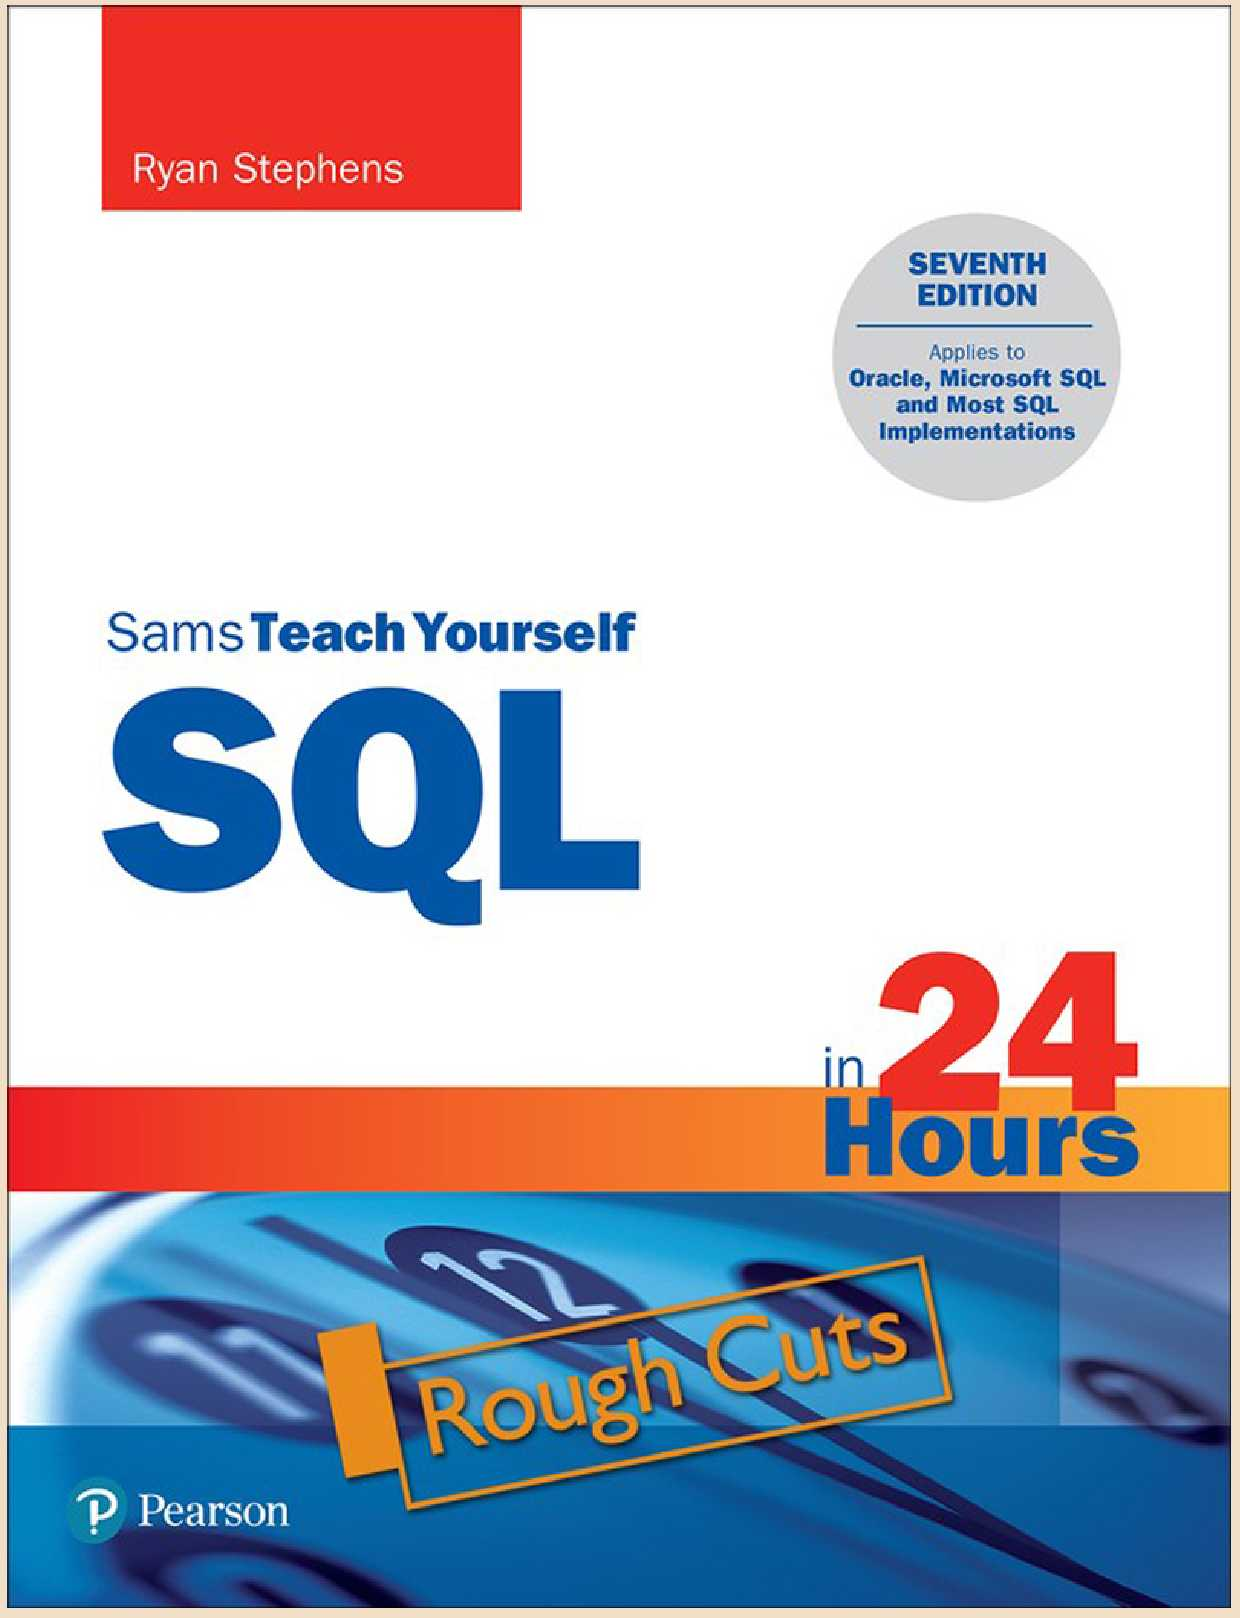 Sams Teach Yourself SQL in 24 Hours, 7th Edition